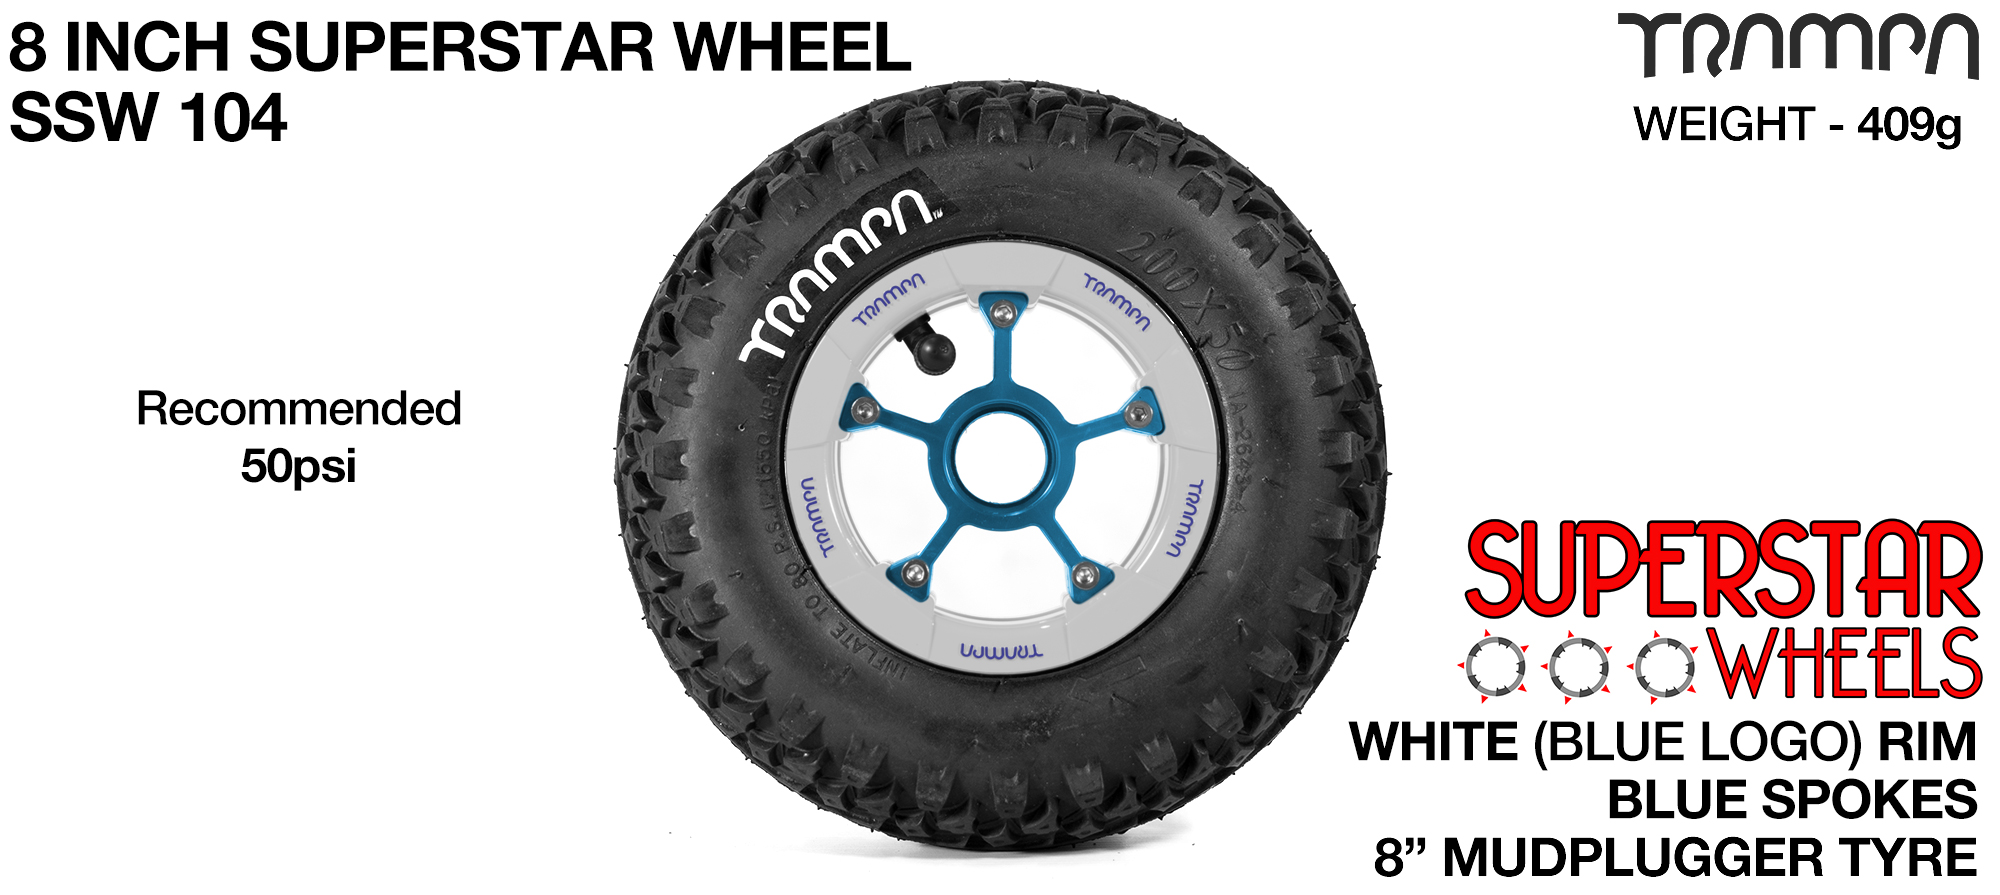 Superstar 8 inch wheels -  White & Blue Logos with Blue Anodised Spokes & Mud Plugger 8 inch Tyre